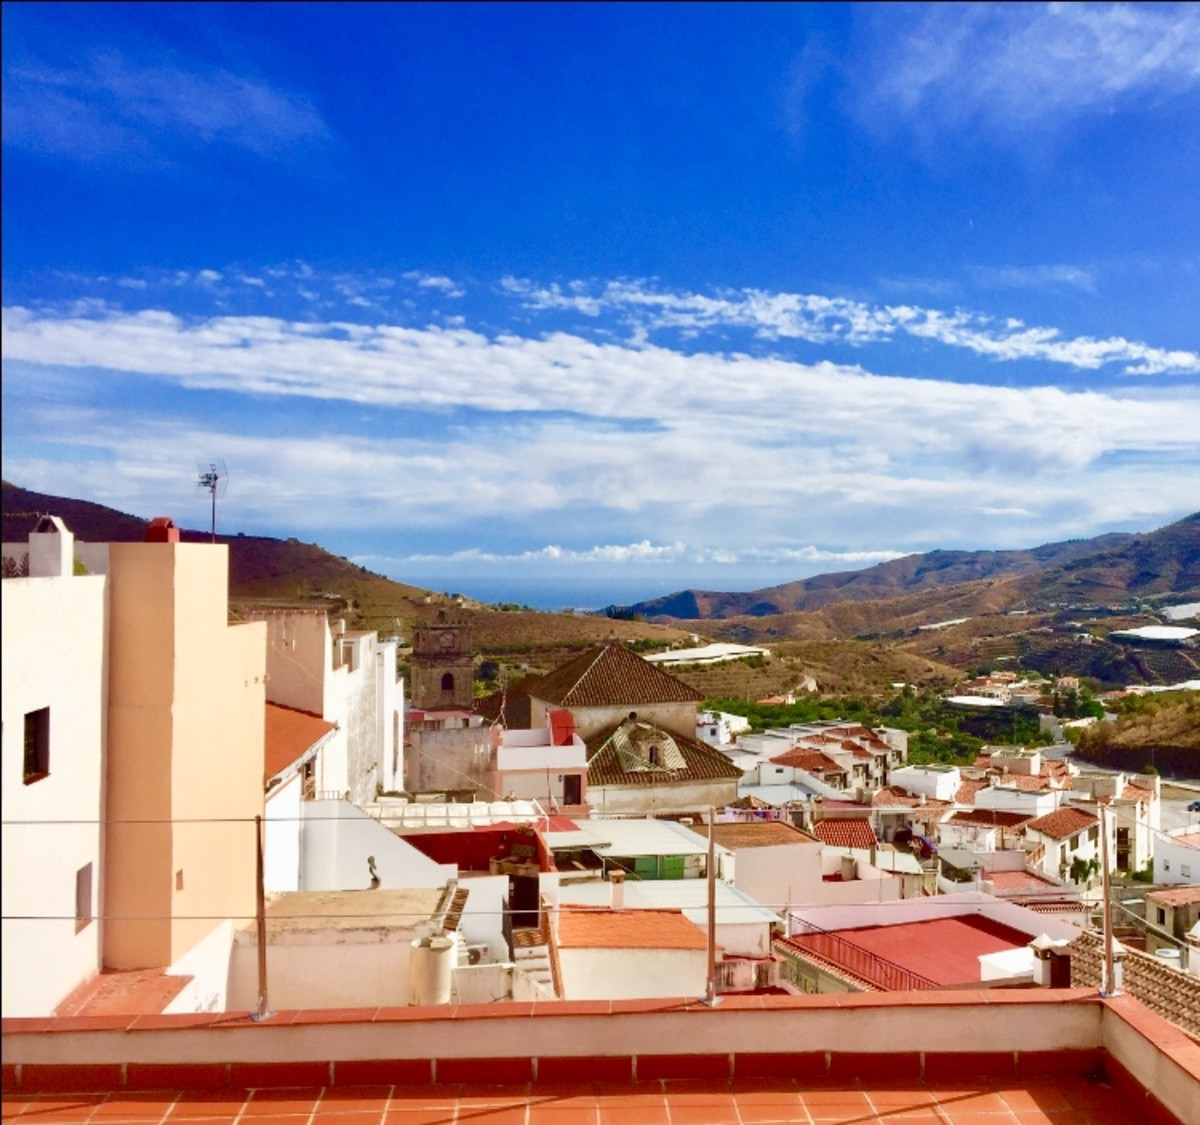 A Day Trip to the Spanish White Villages Ítrabo and Jete